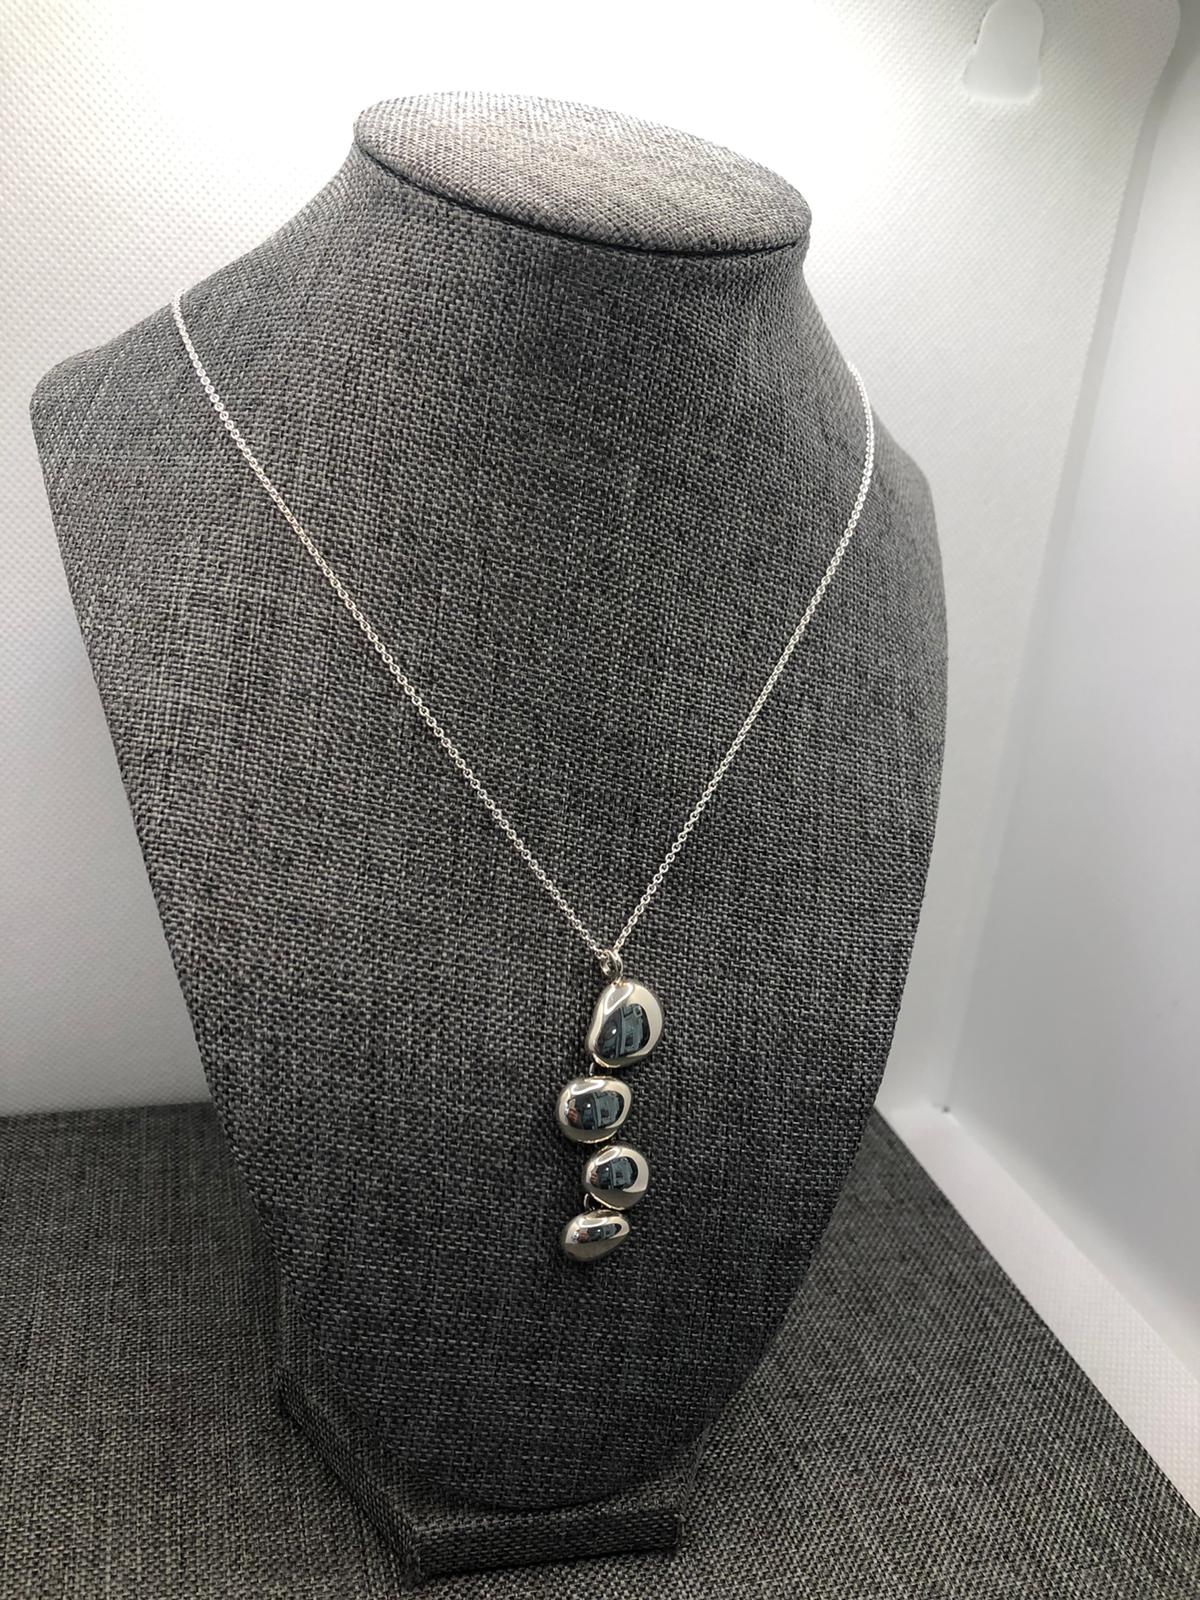 Polished Pebble Pendant, Stirling Silver by Chris Lewis